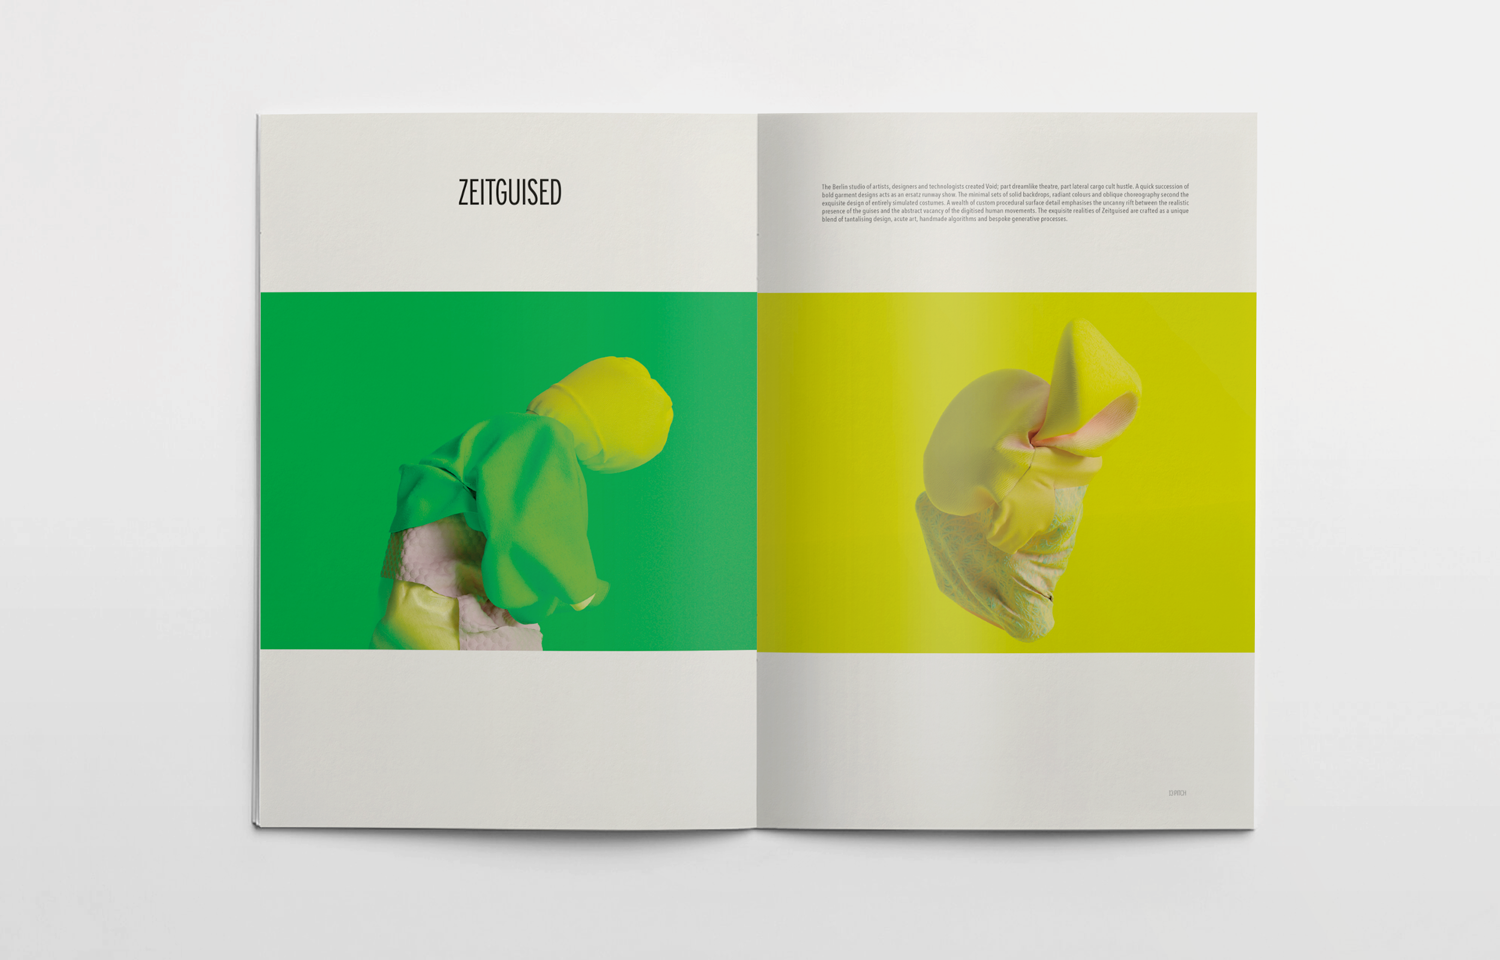 Editorial spread featuring Zeitguised for the Pitch fanzine.